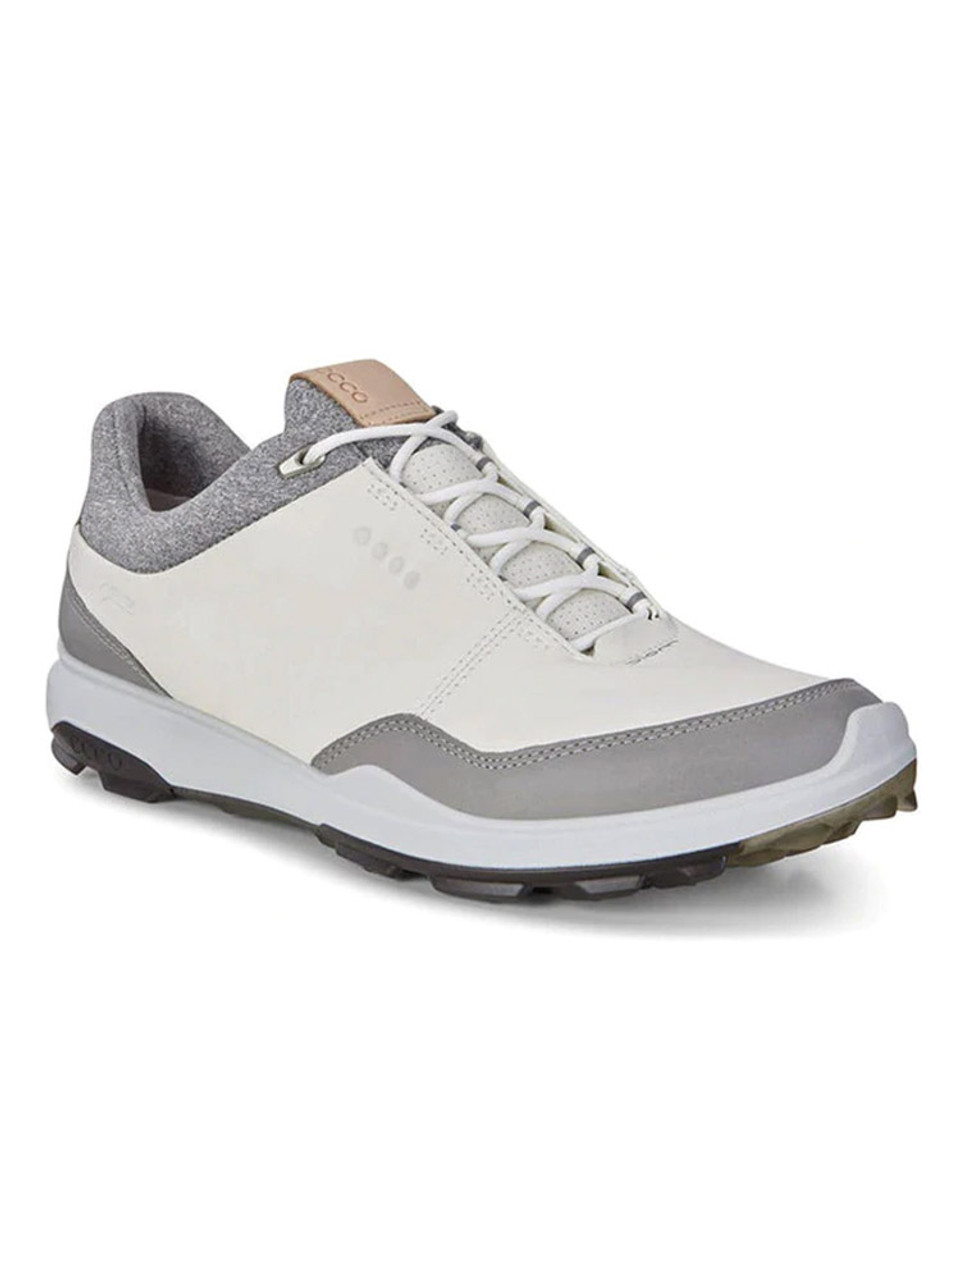 ecco white golf shoes